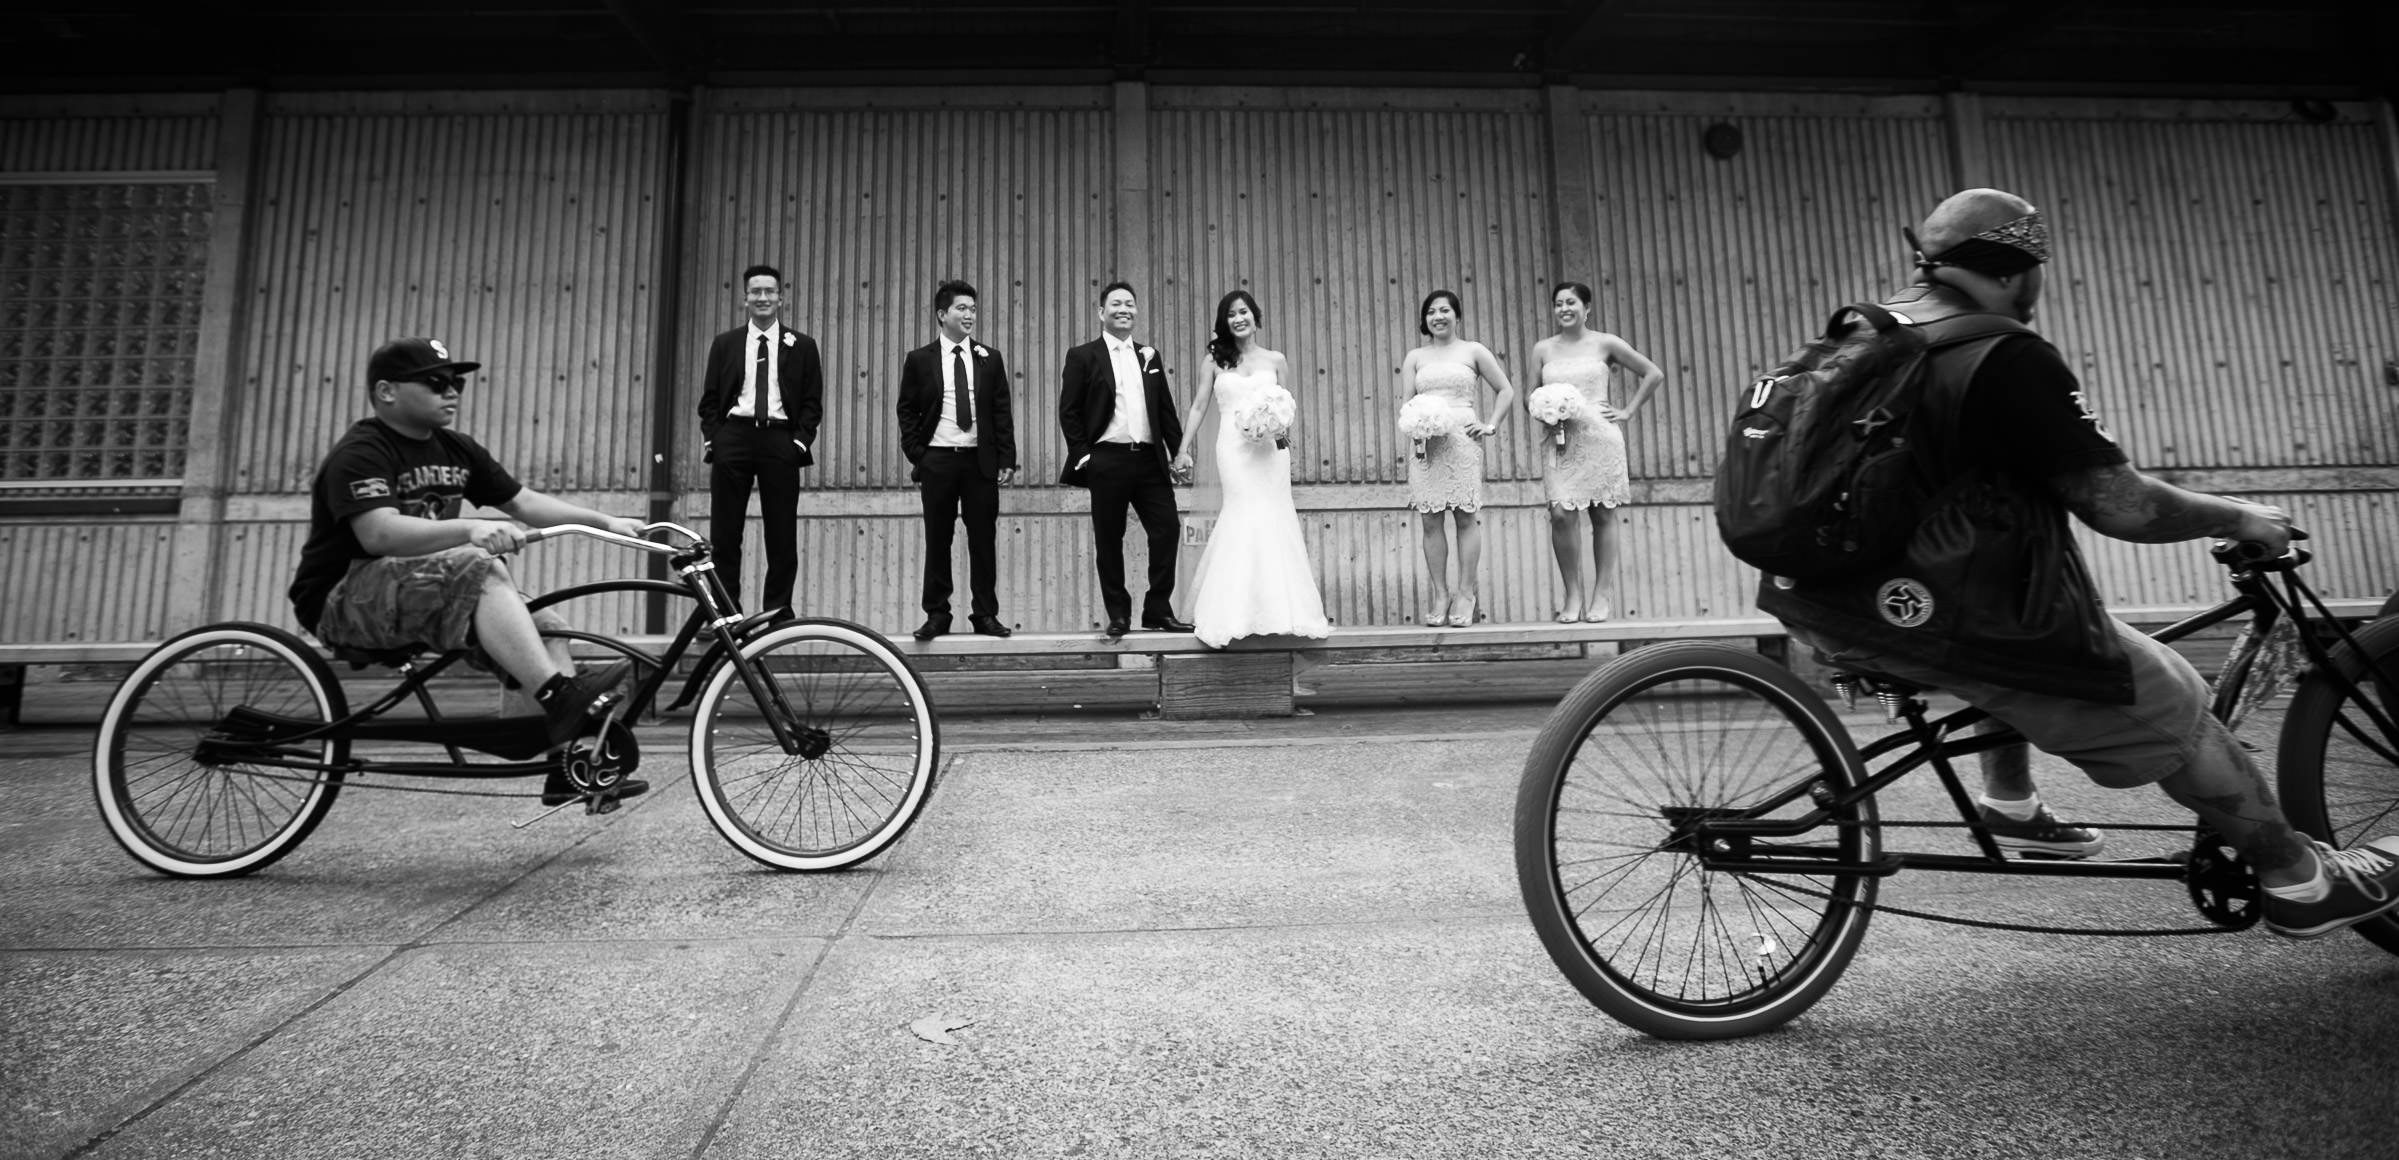 bicyclists photobombing the wedding party